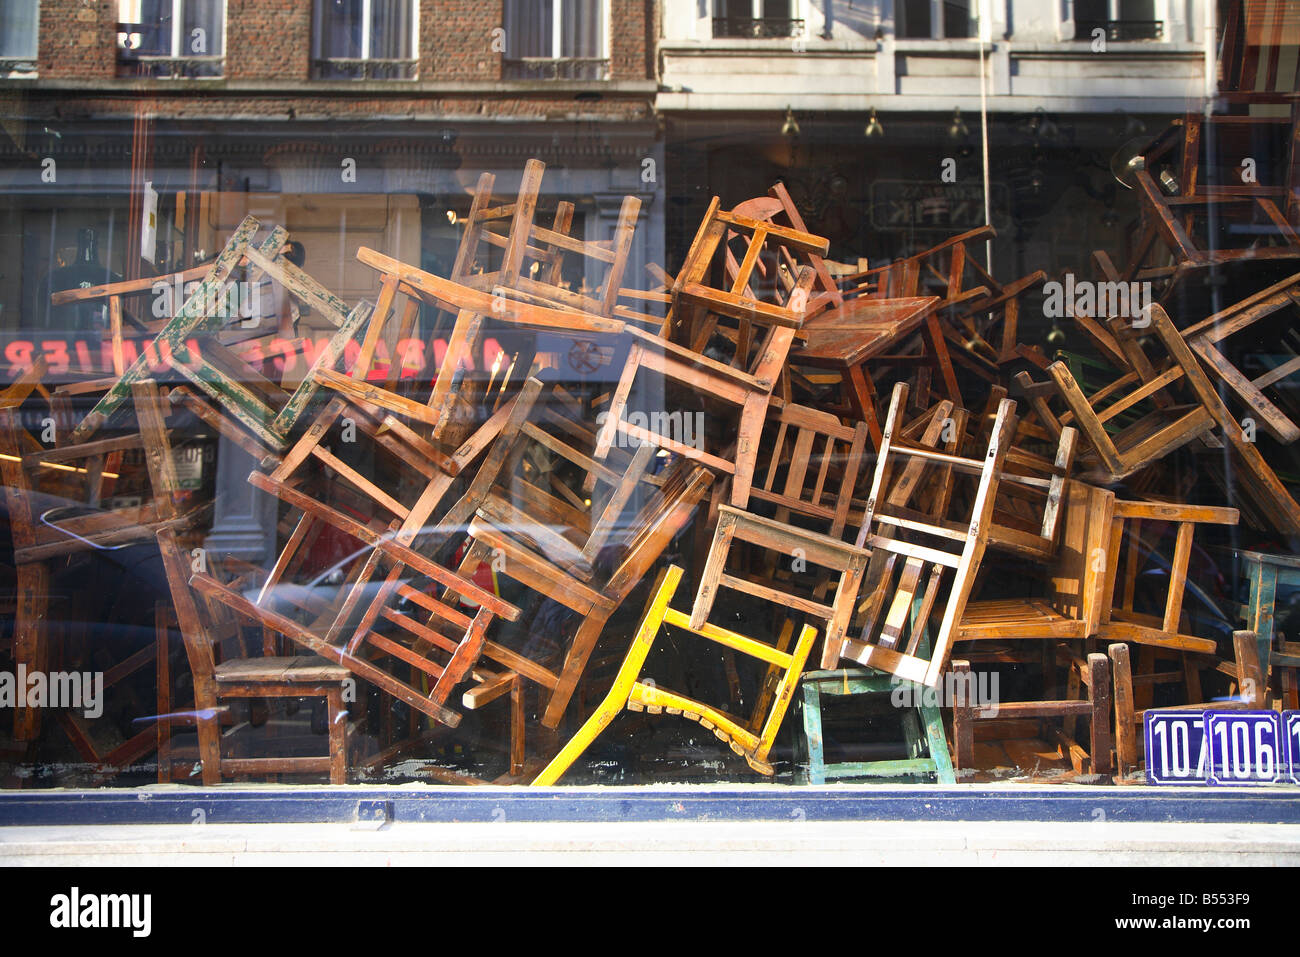 Brussels Shop Shopping Chair Chairs Stock Photos & Brussels Shop ...